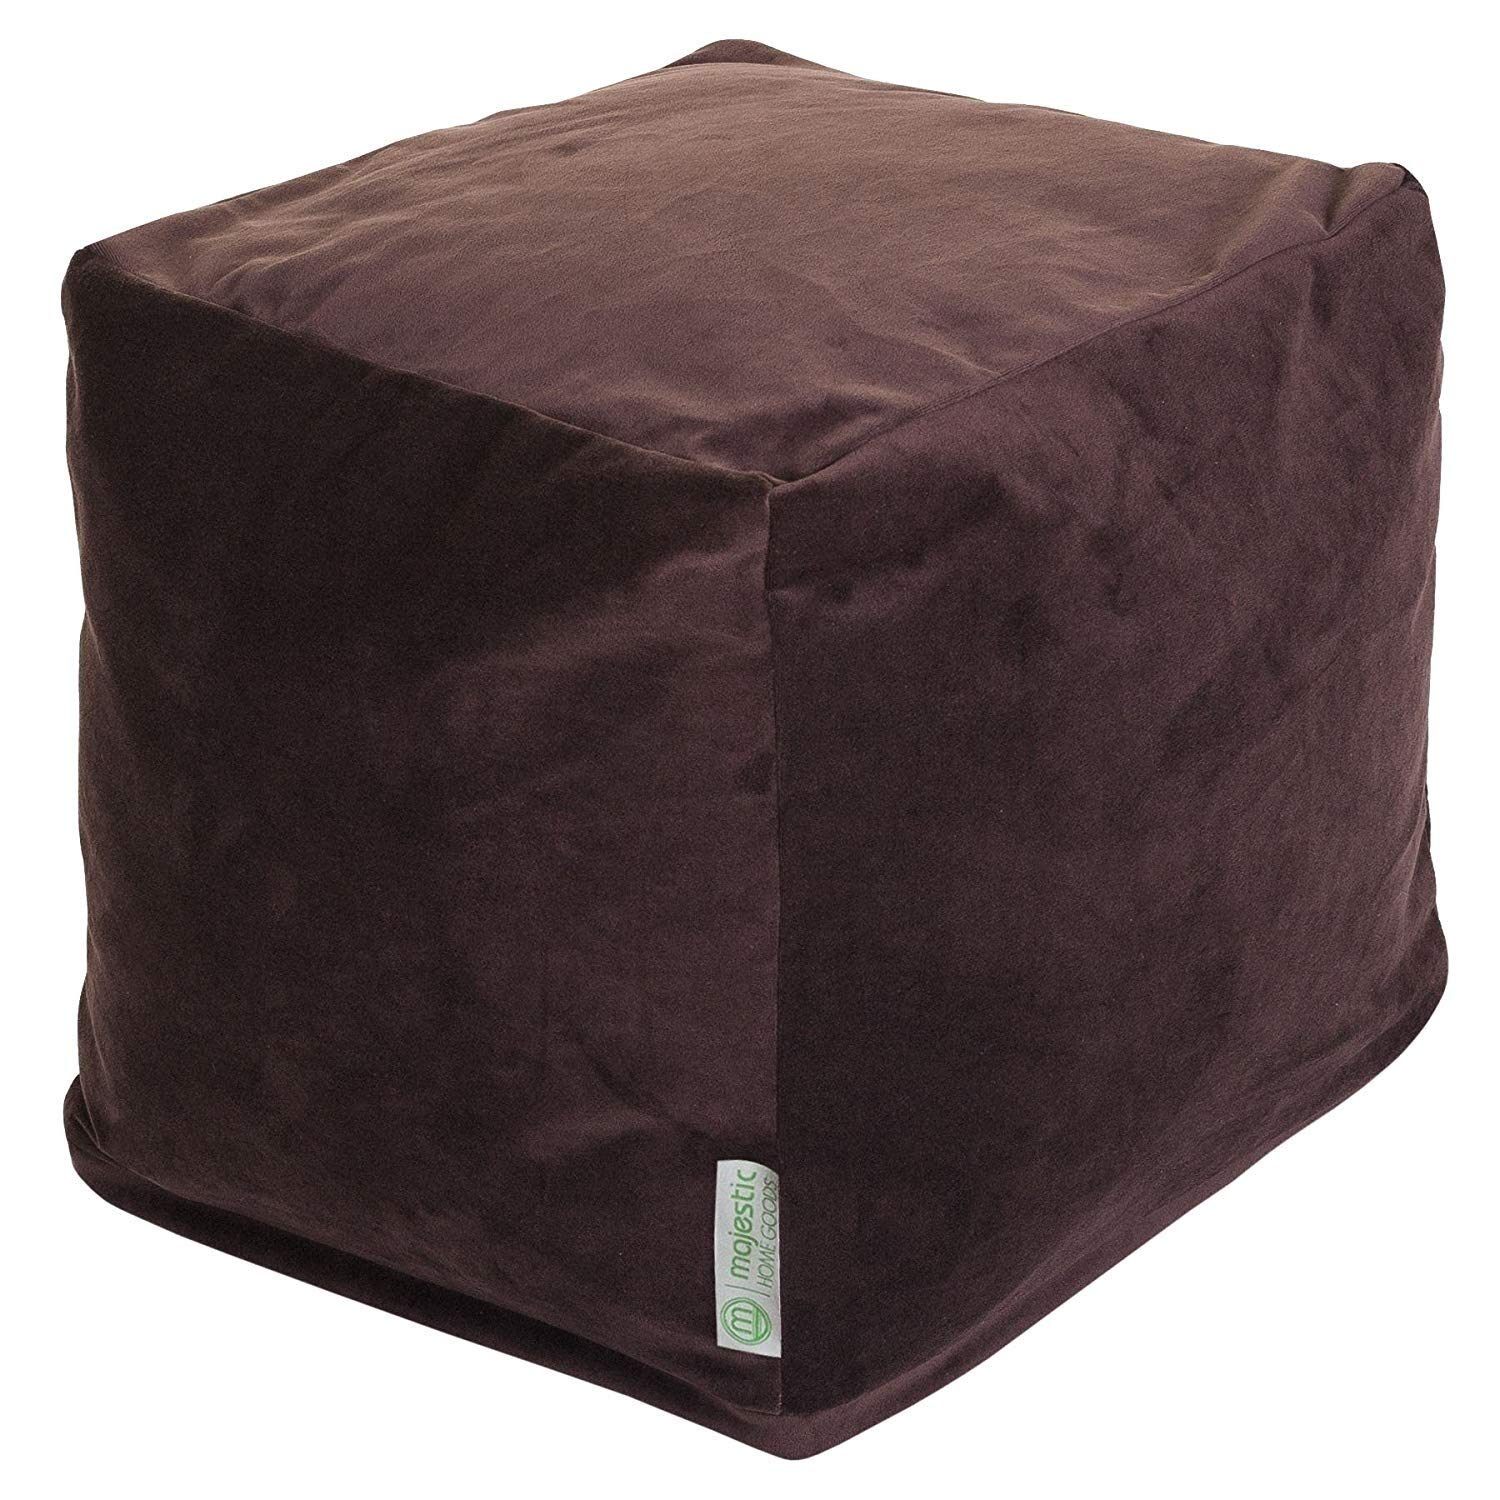 Majestic Home Goods Chocolate Velvet Indoor/Outdoor Bean Bag Ottoman Pouf Cube 17'' L x 17'' W x 17'' H by Majestic Home Goods